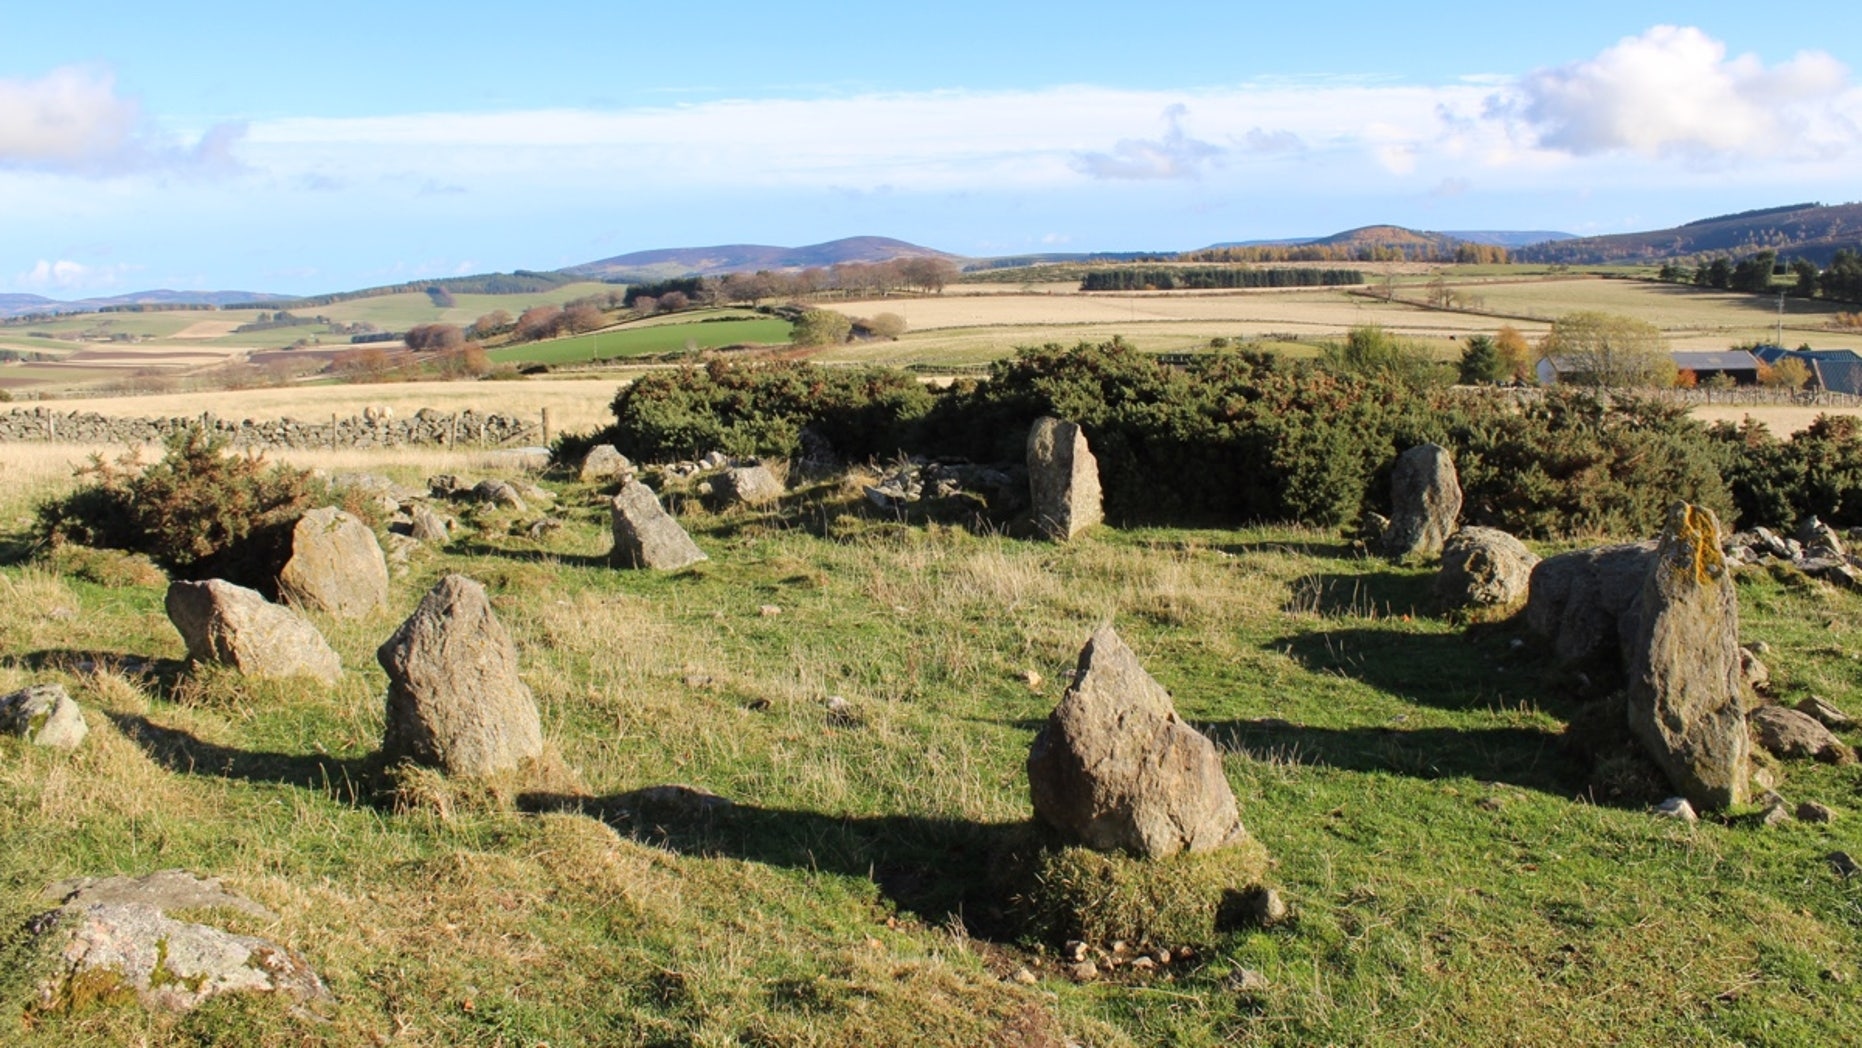 The Neolithic mill round nearby a encampment of Alford, west of Aberdeen, was opposite to archaeologists until recently – yet obvious to internal people.